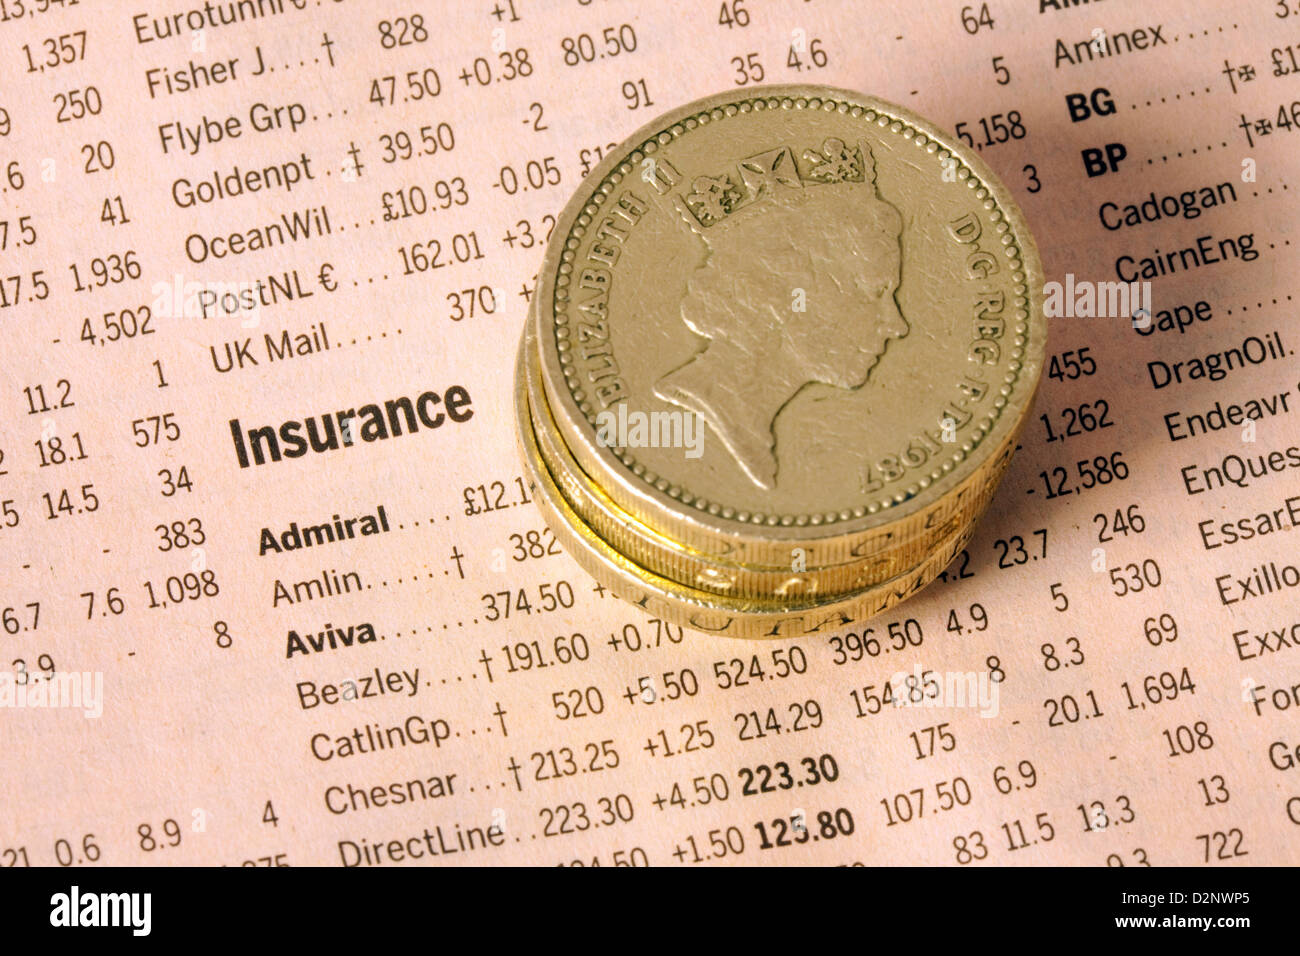 Pound coins and Insurance companies share values in the Financial Times, Britain, UK - Stock Image